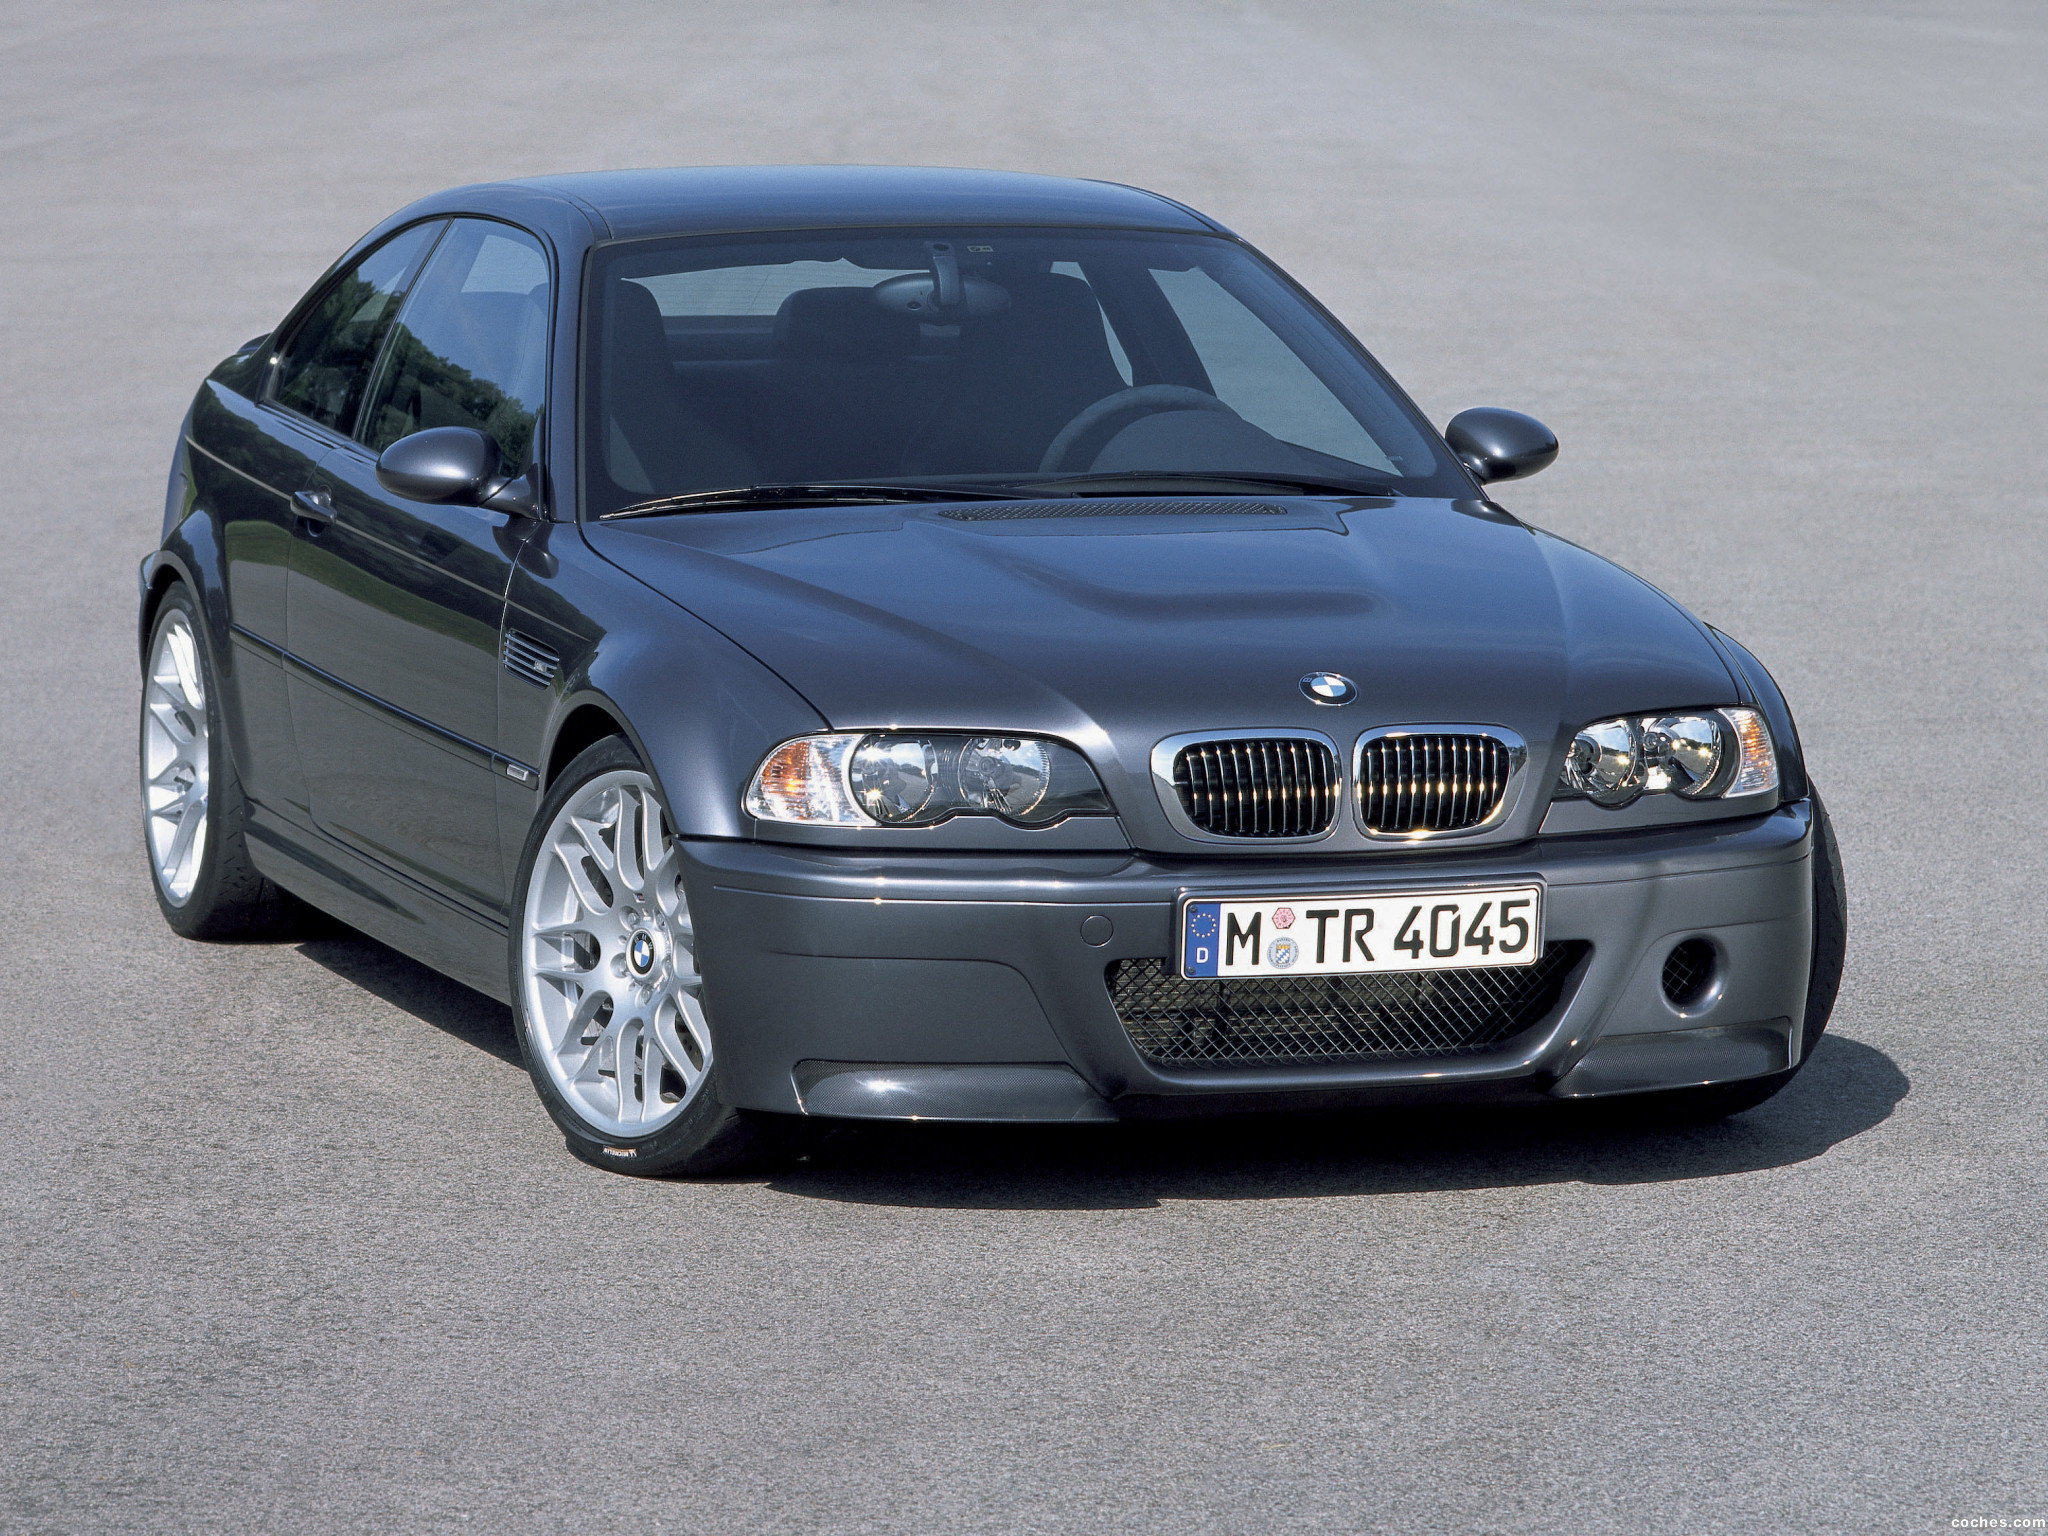 Bmw 318i 2014 Review Amazing Pictures And Images Look